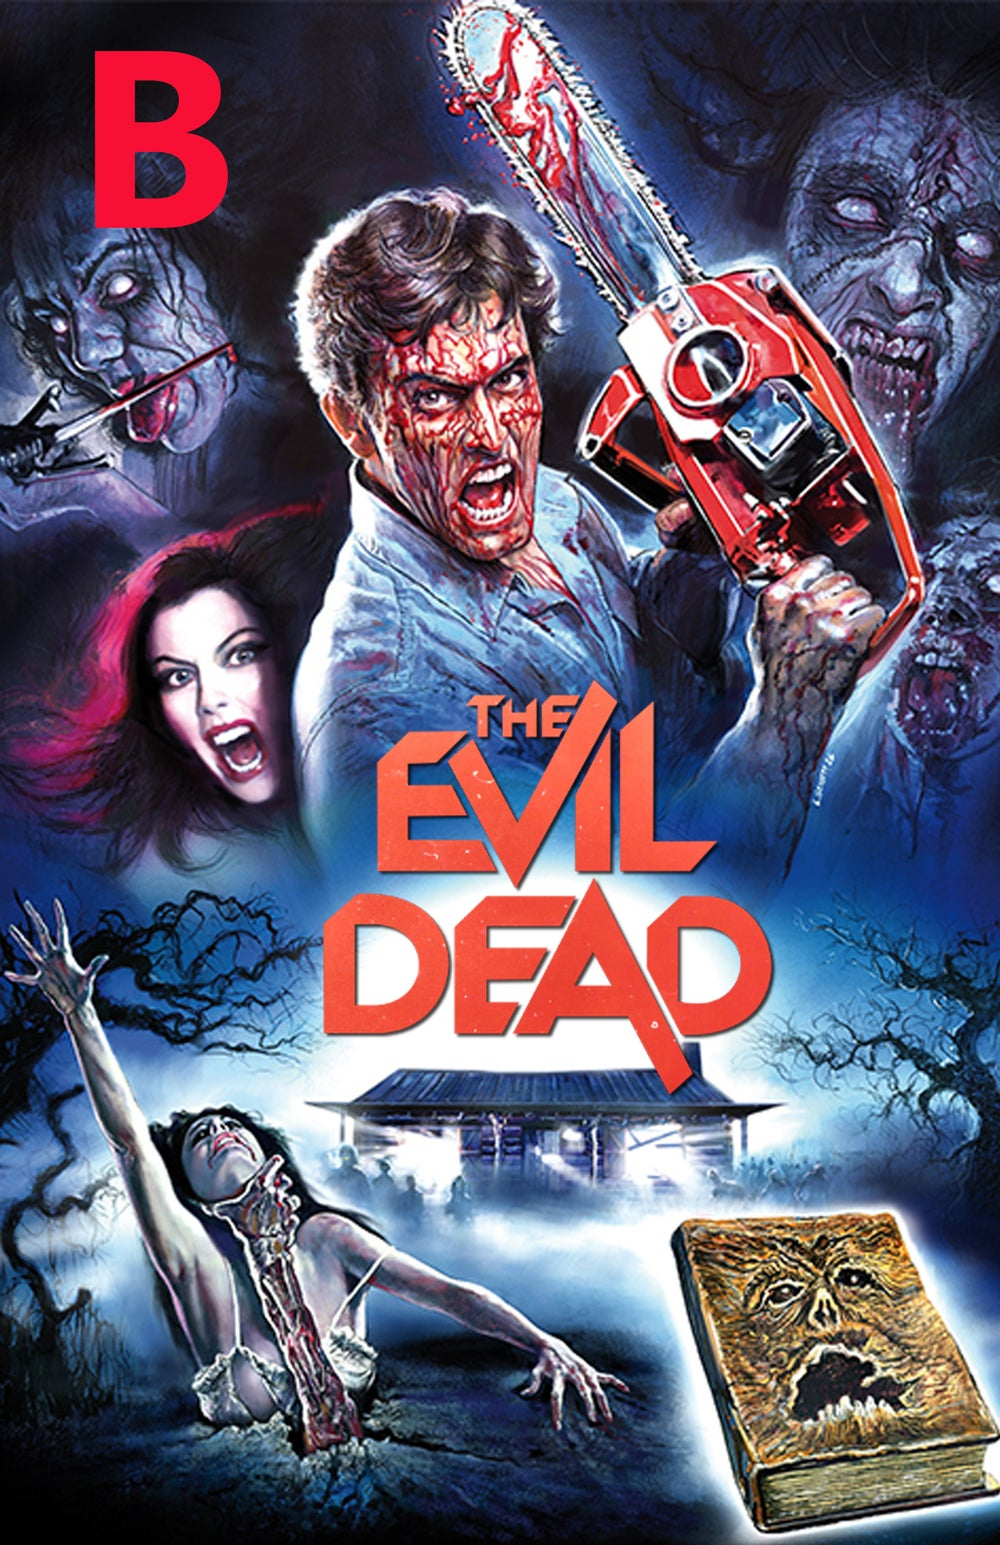 11x17 Quad The Evil Dead Signed Movie Posters Pre-Order